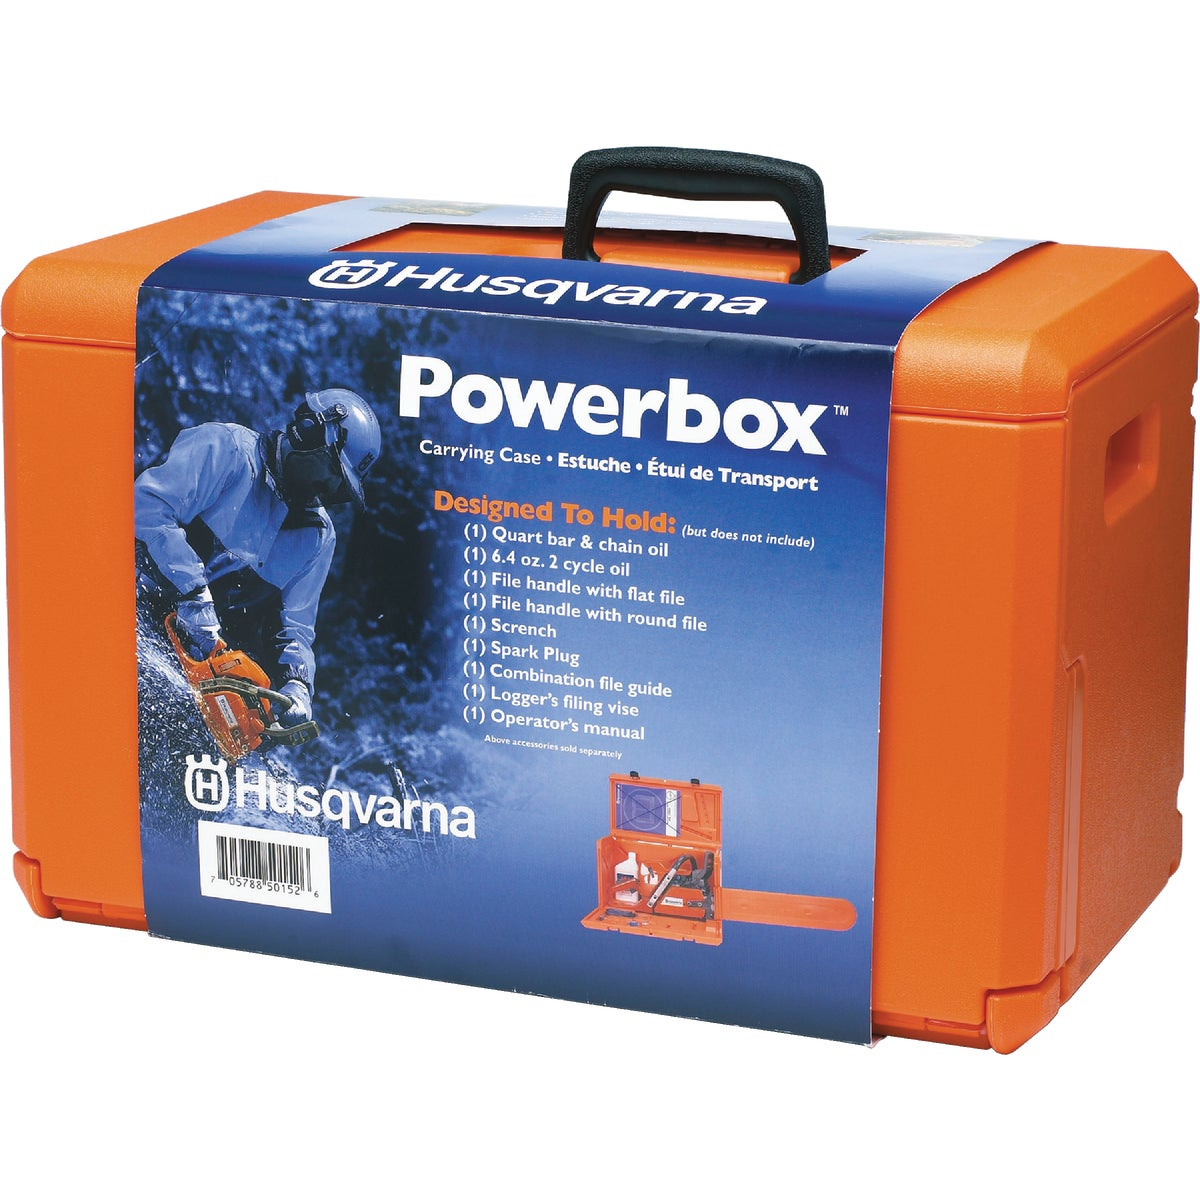 POWERBOX CARRY CASE - 100000107 by Husqvarna Outdoor